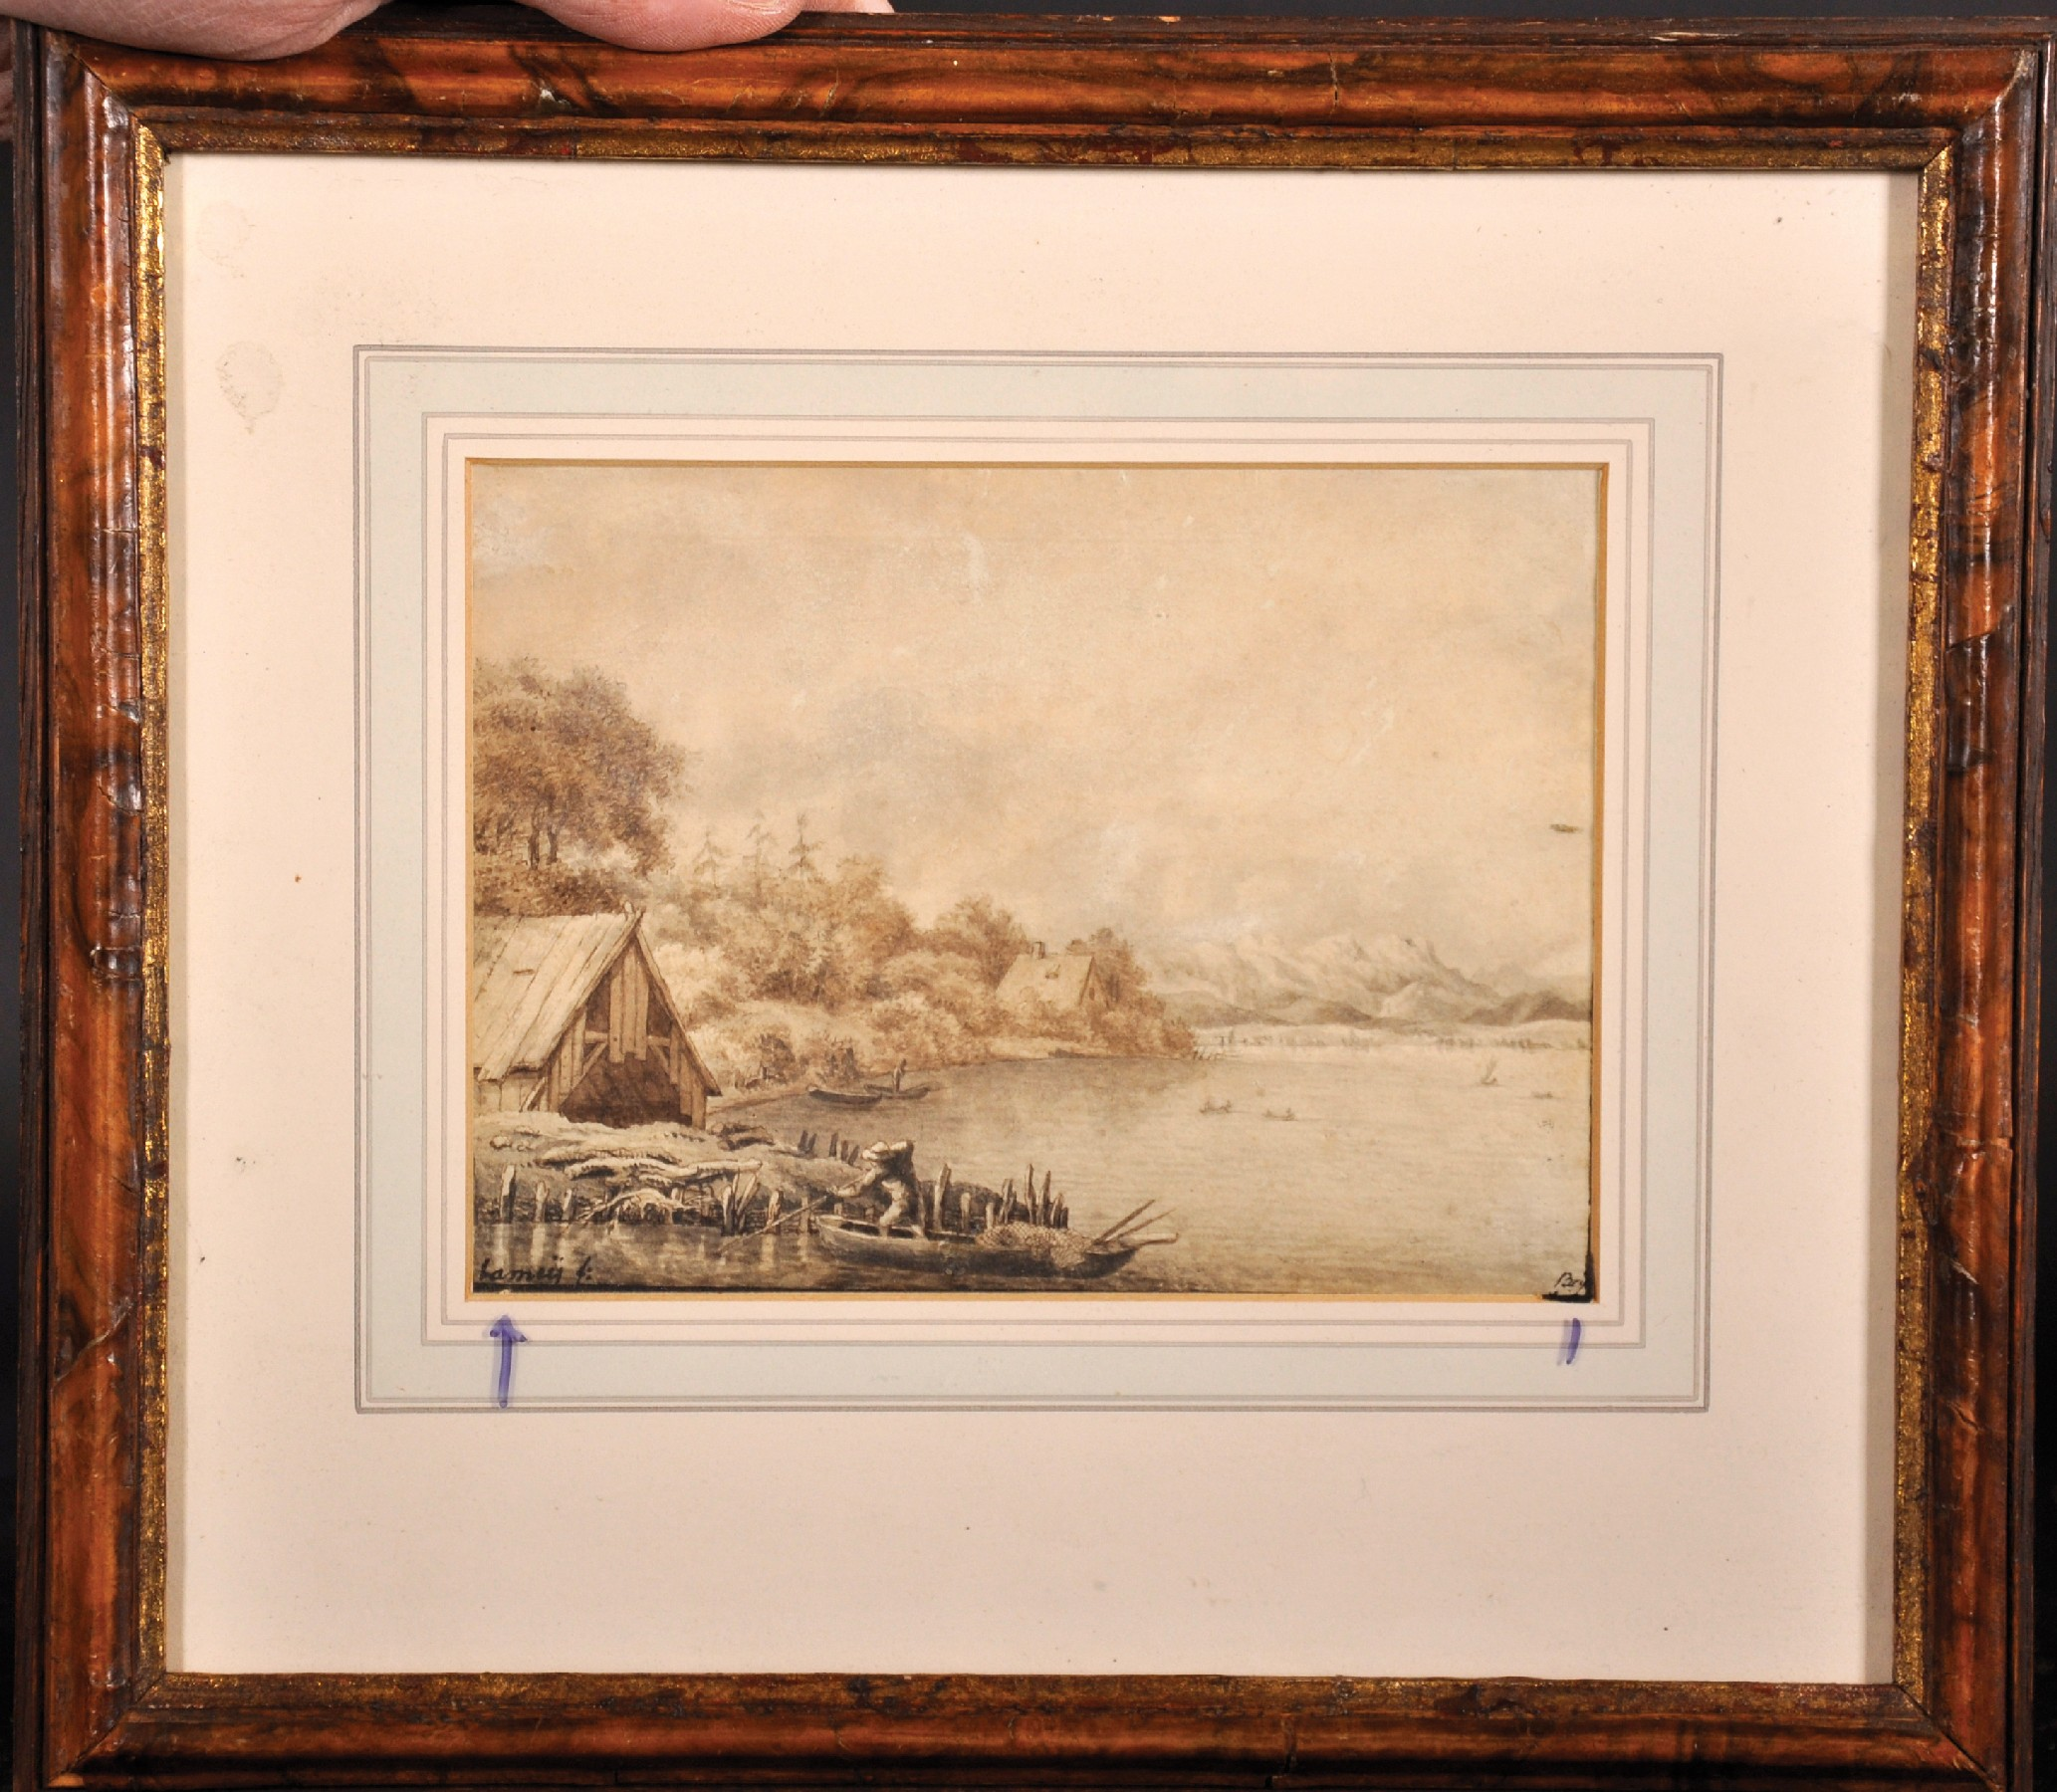 Lamey (Early 19th Century) German. A River Landscape, with a Figure in a Boat, Sepia, Signed and - Image 2 of 6